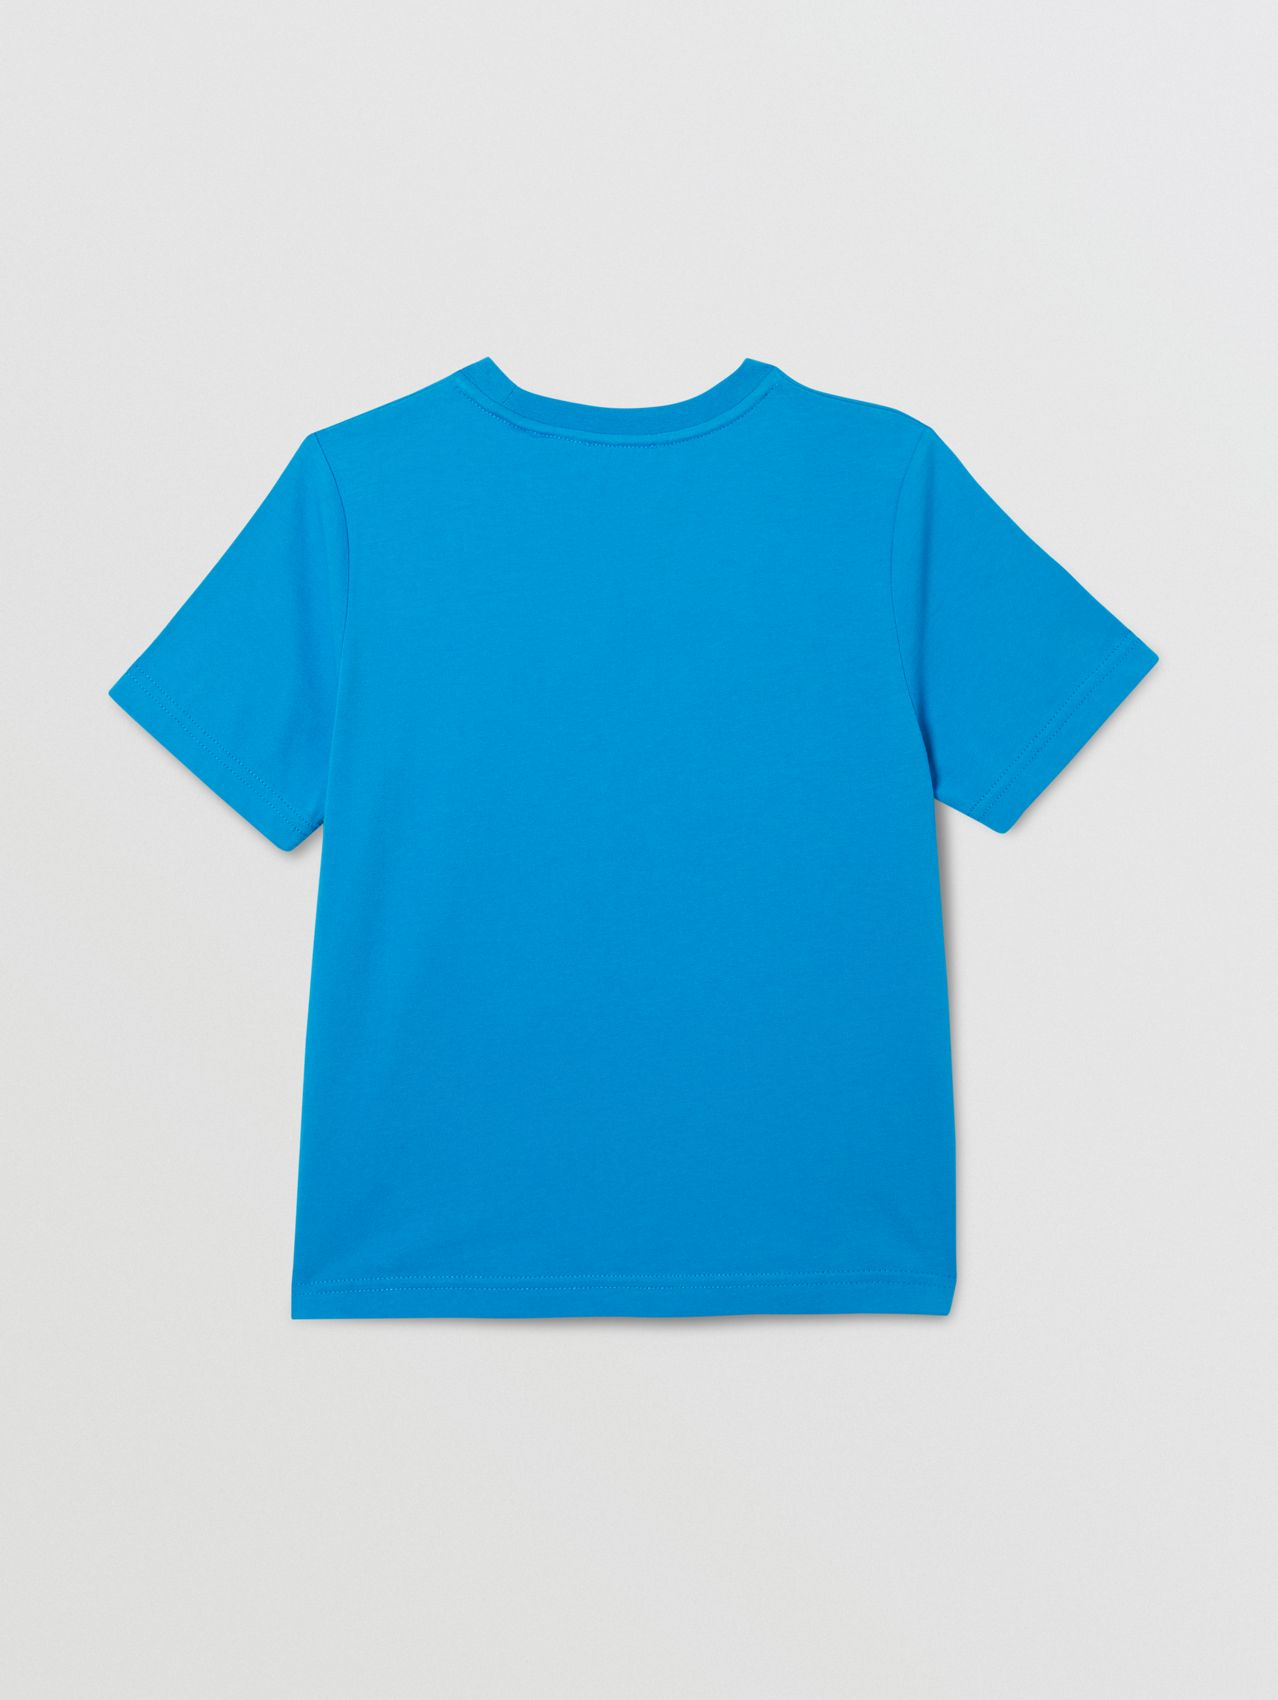 Logo Graphic Print Cotton T-shirt in Cerulean Blue